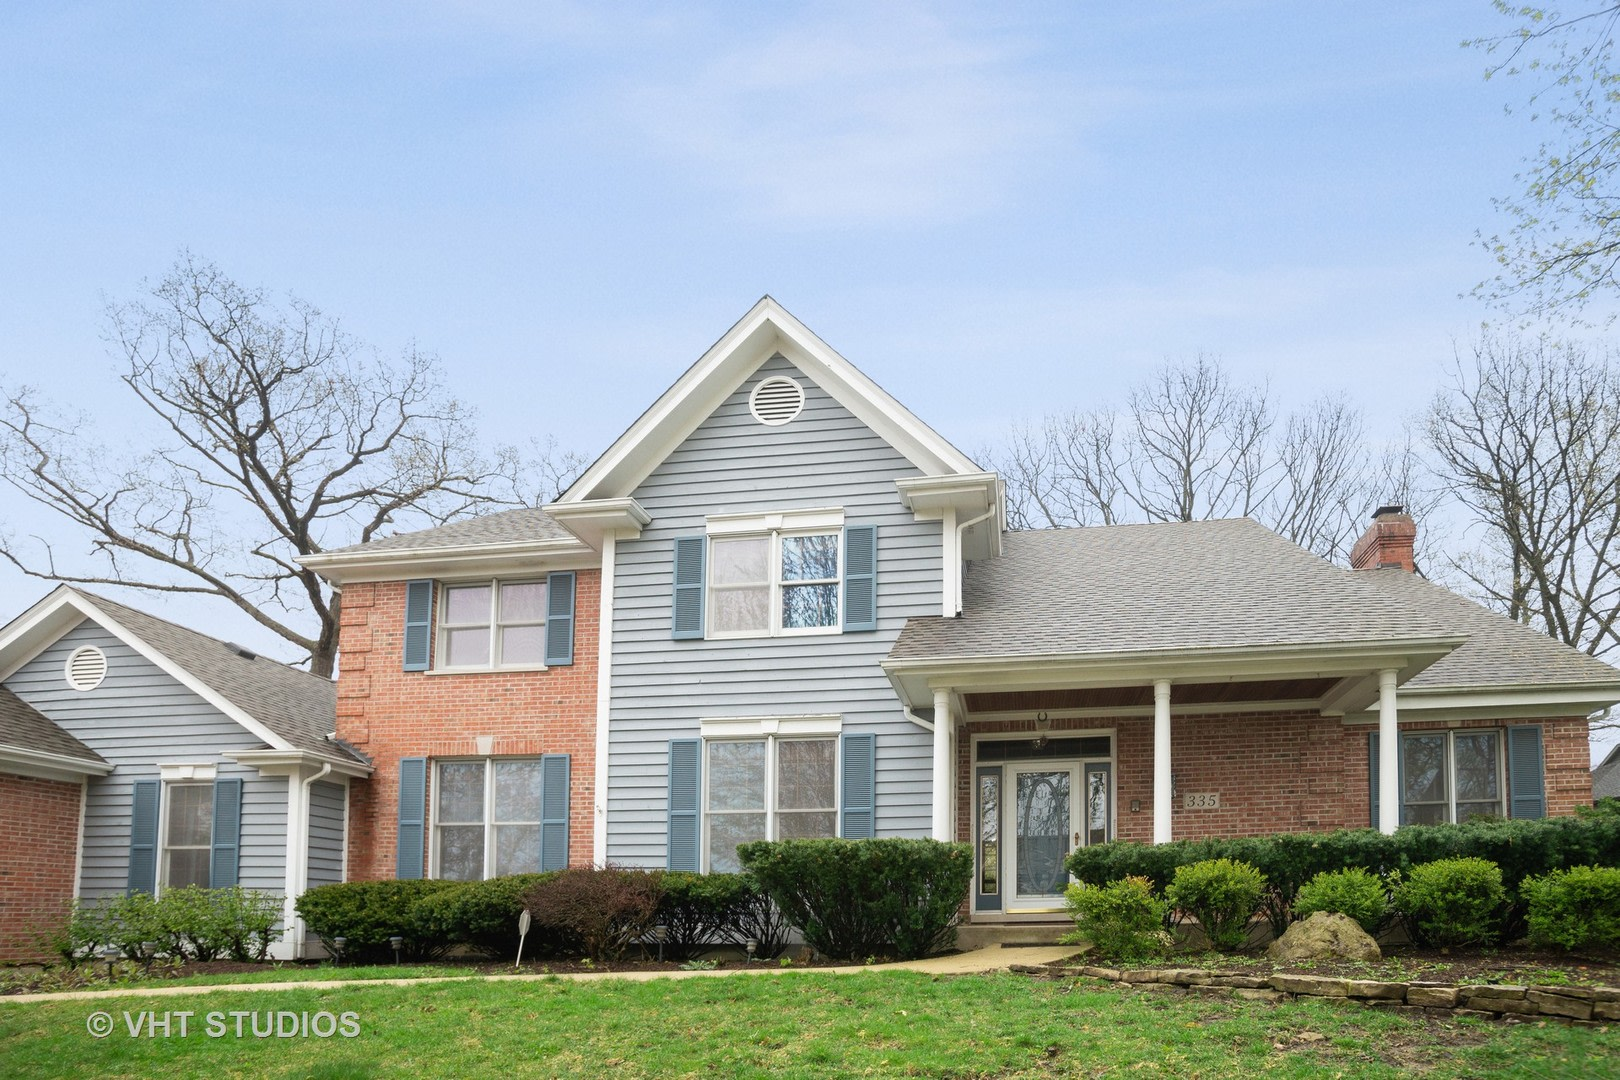 20 best apartments in bartlett il with pictures rh apartmentlist com